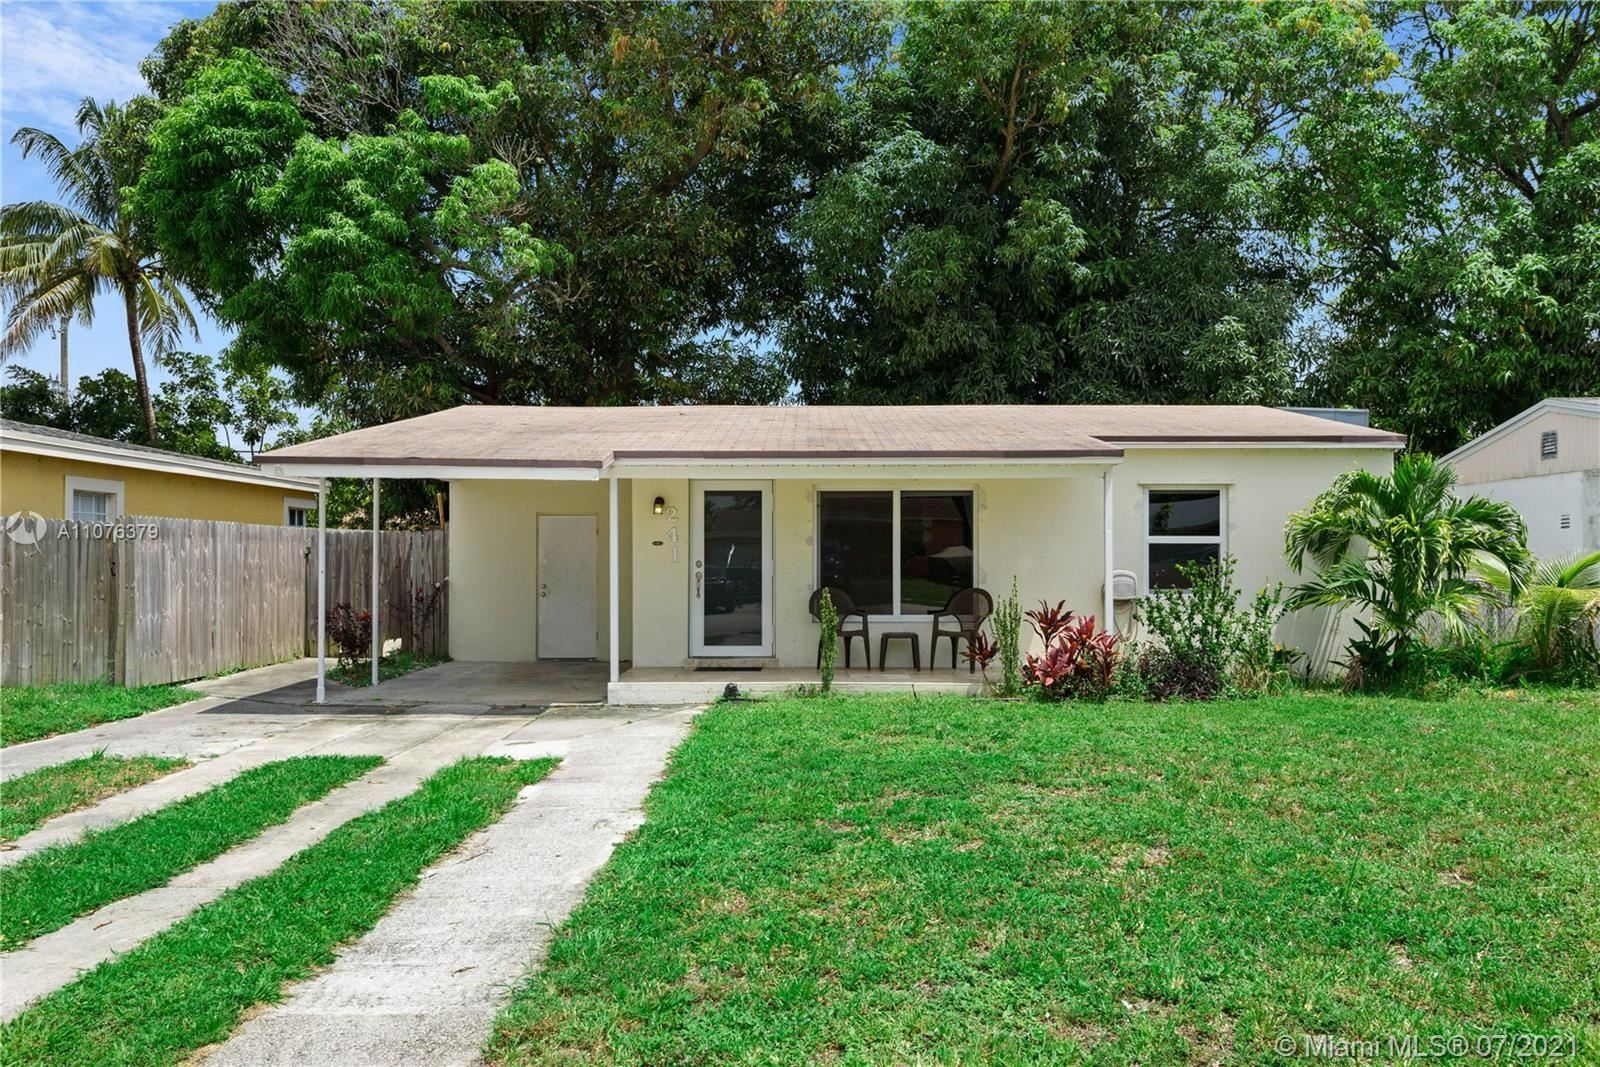 241 NW 52nd Ct, Oakland Park, FL 33309 - #: A11076379